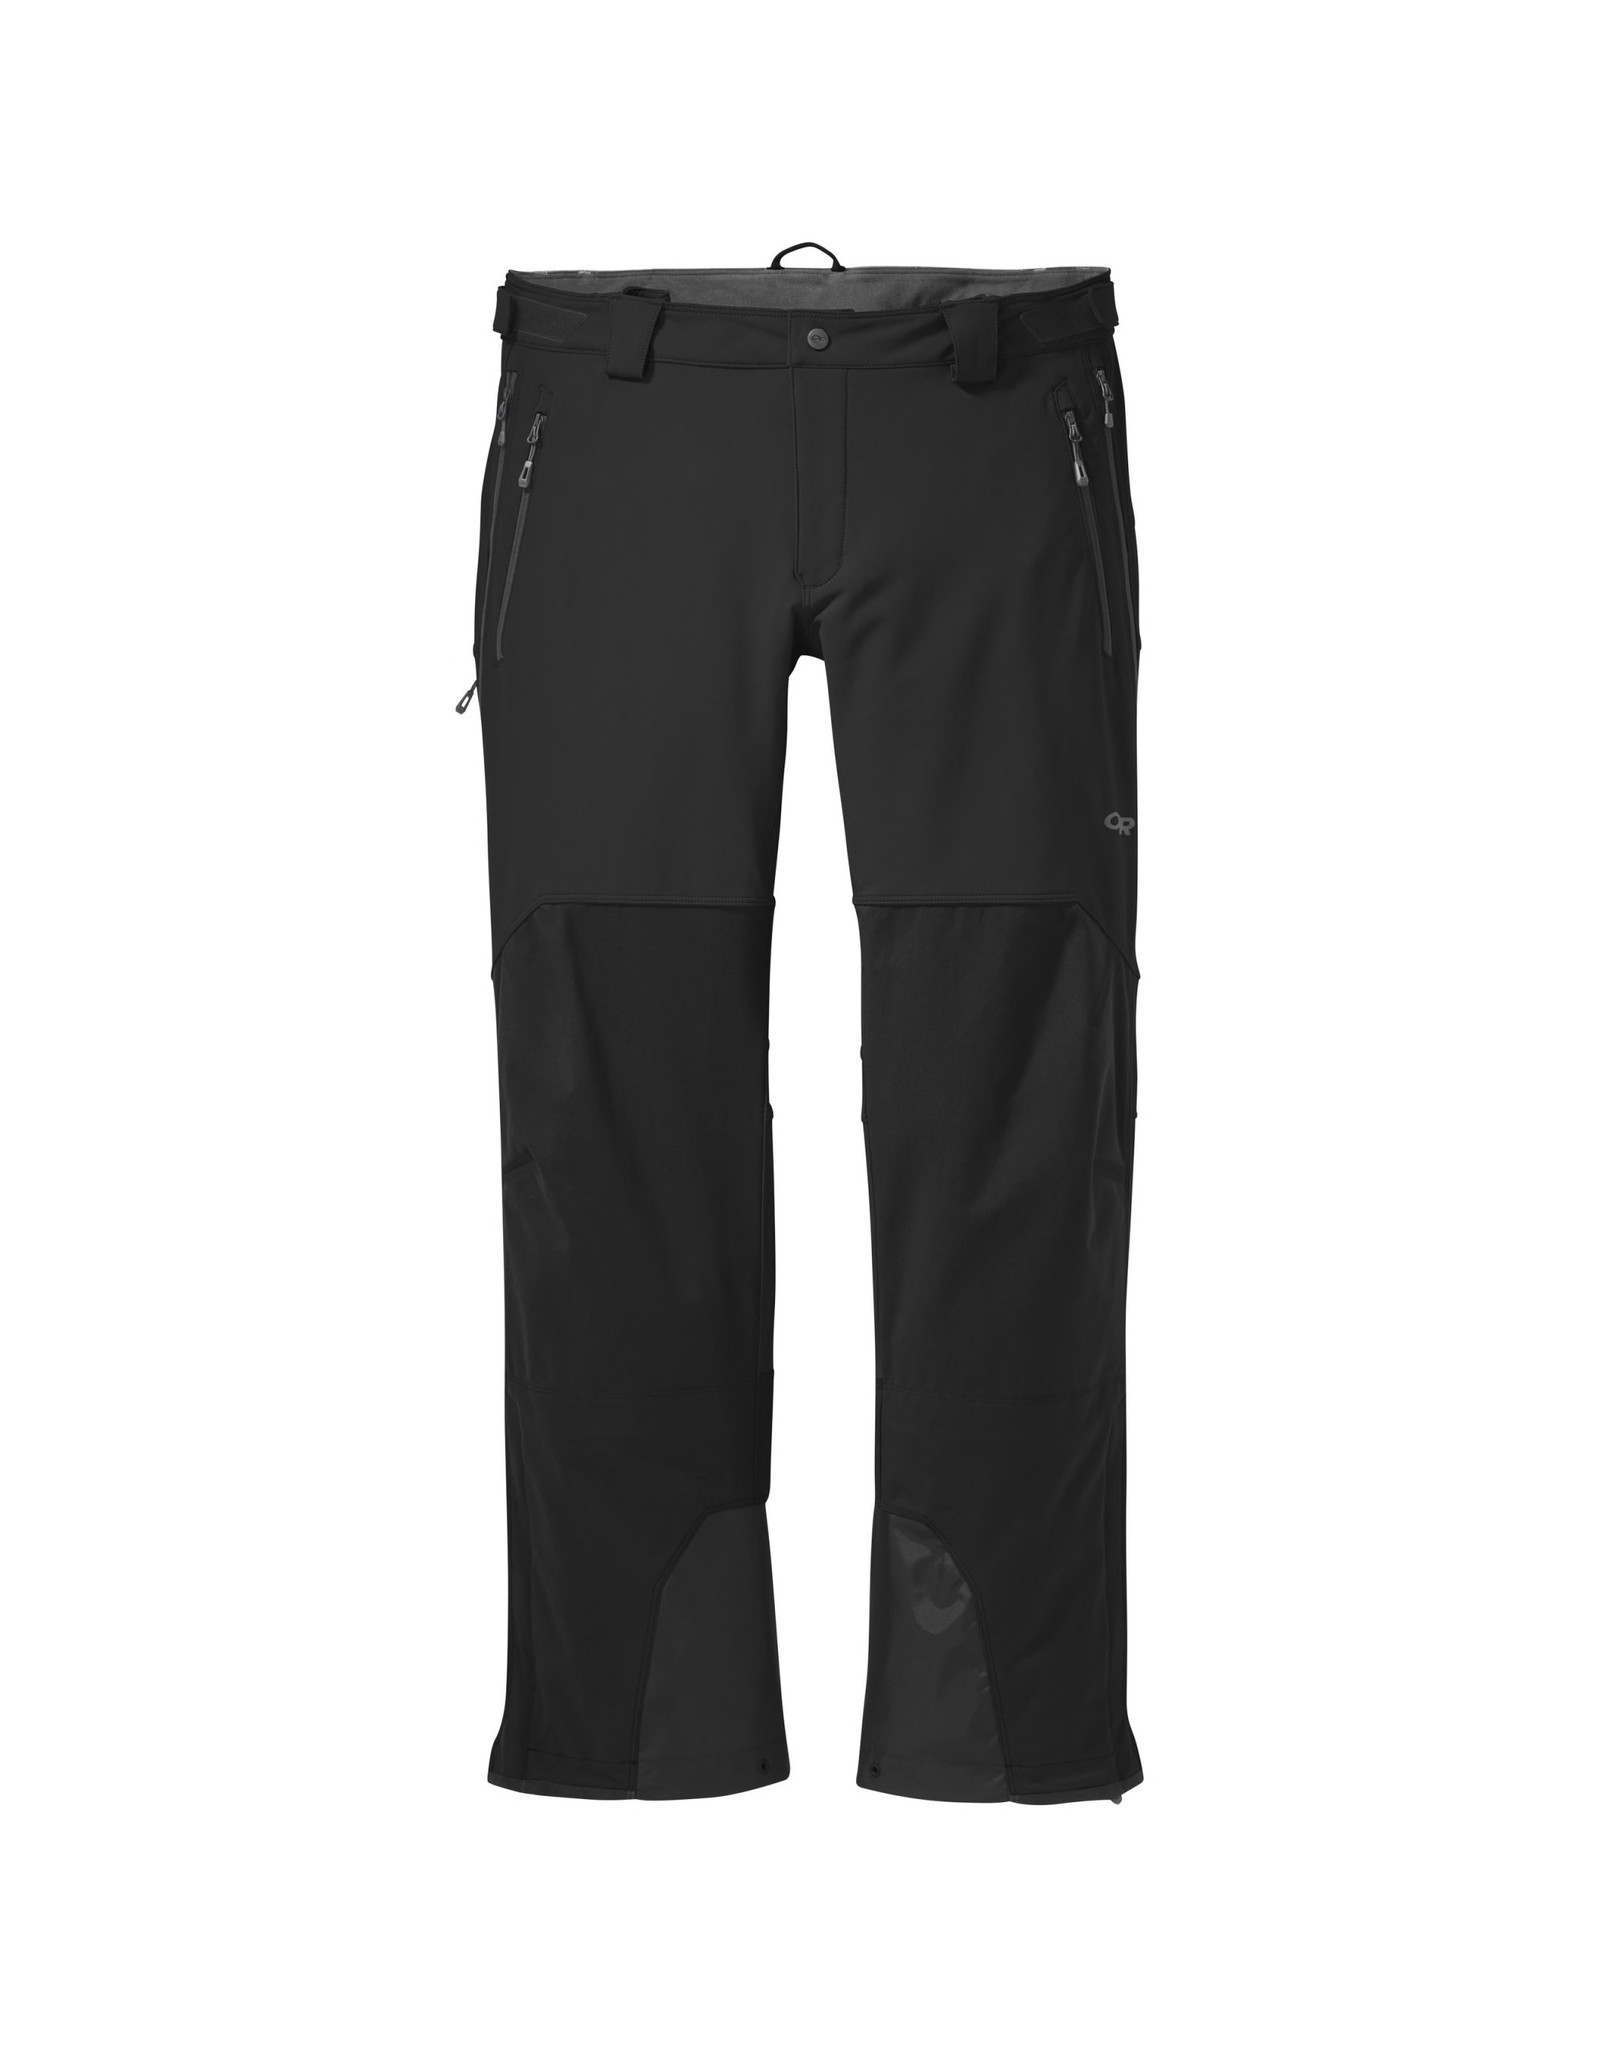 Outdoor Research OR M's Trailbreaker II Pants